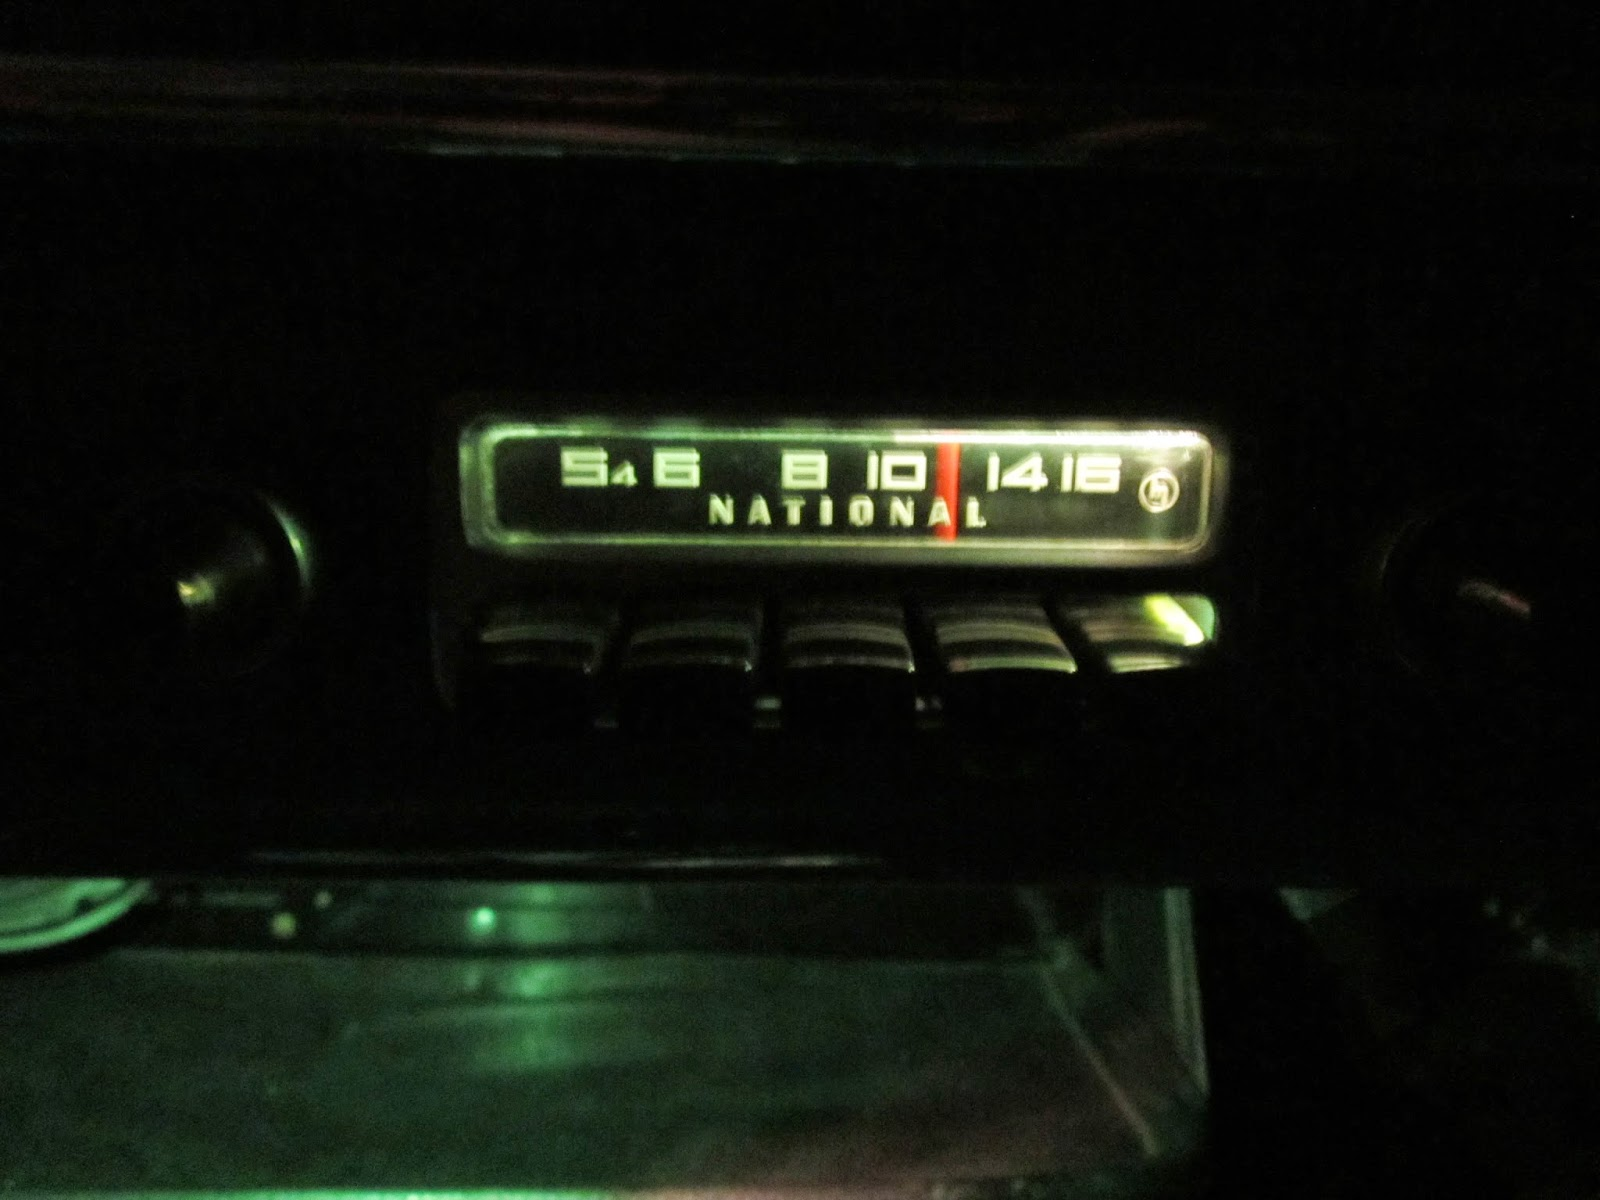 Broken old school radio now in use as an extra dashboard light